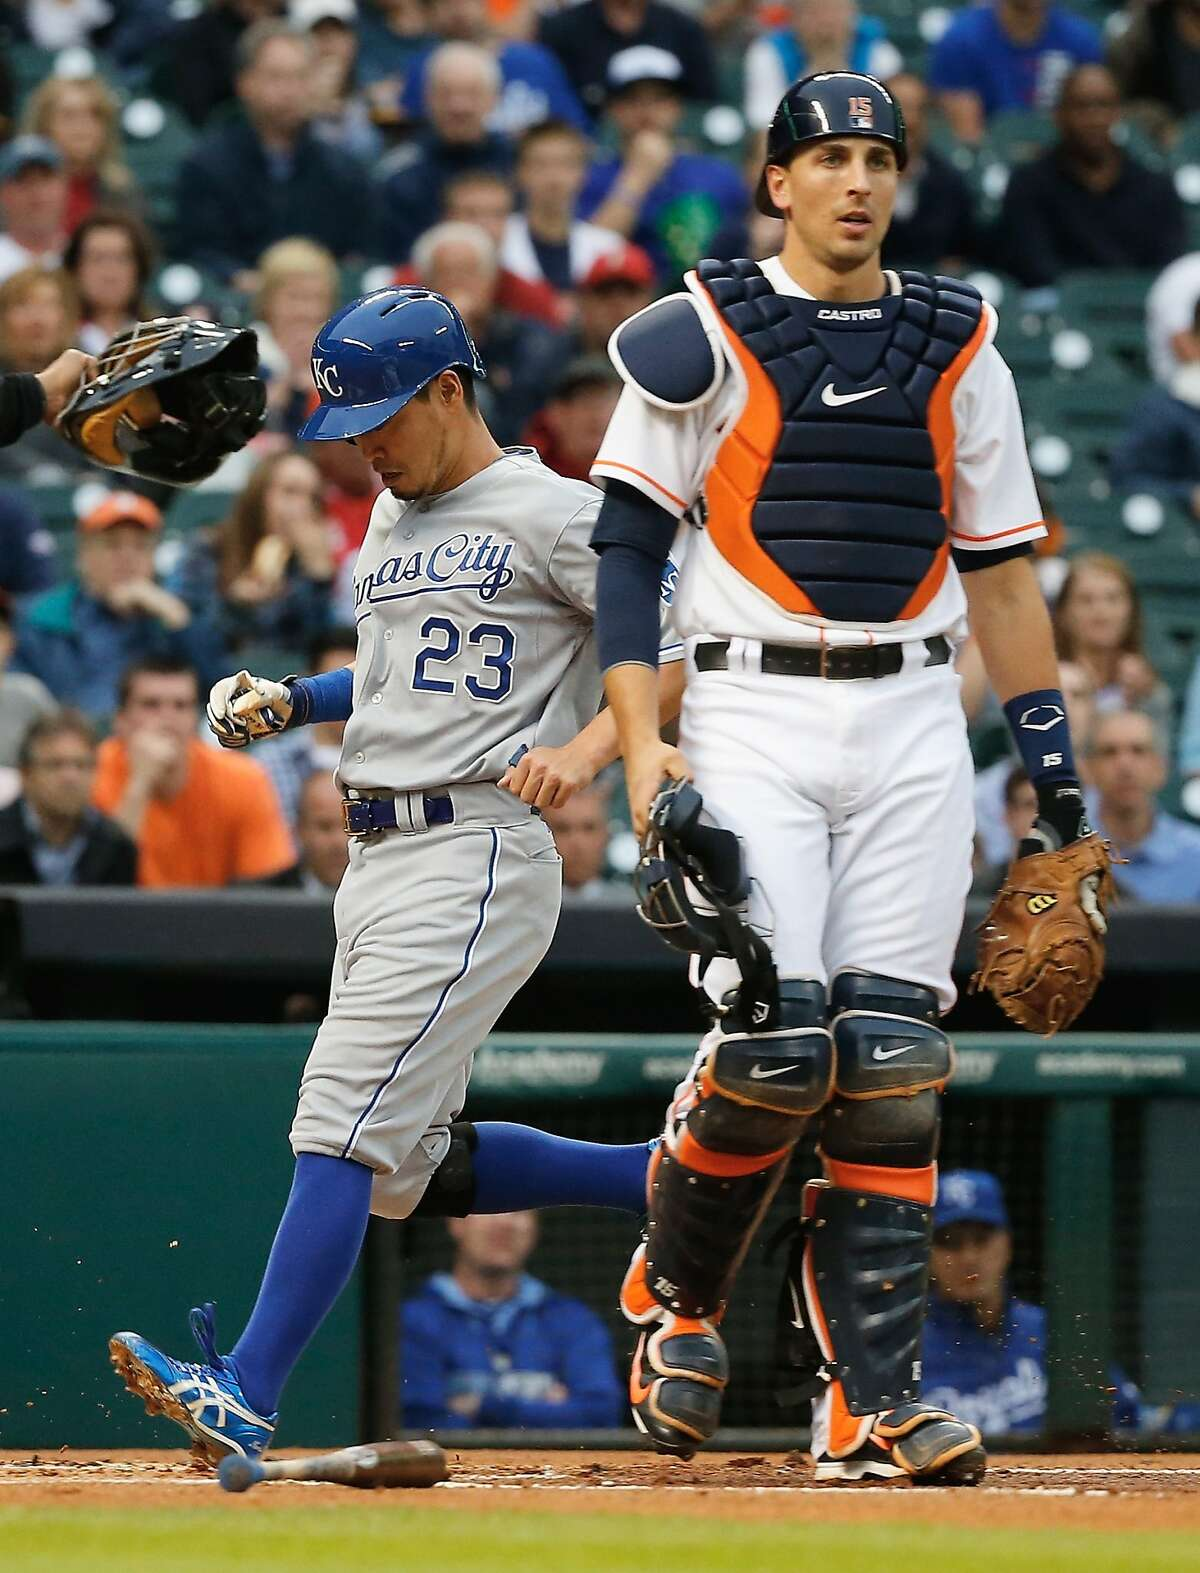 HOUSTON, TX - APRIL 17: Nori Aoki #23 of the Kansas City Royals scores a run in the first inning as Jason Castro #15 of the Houston Astros looks on during their game at Minute Maid Park on April 17, 2014 in Houston, Texas. (Photo by Scott Halleran/Getty Images)